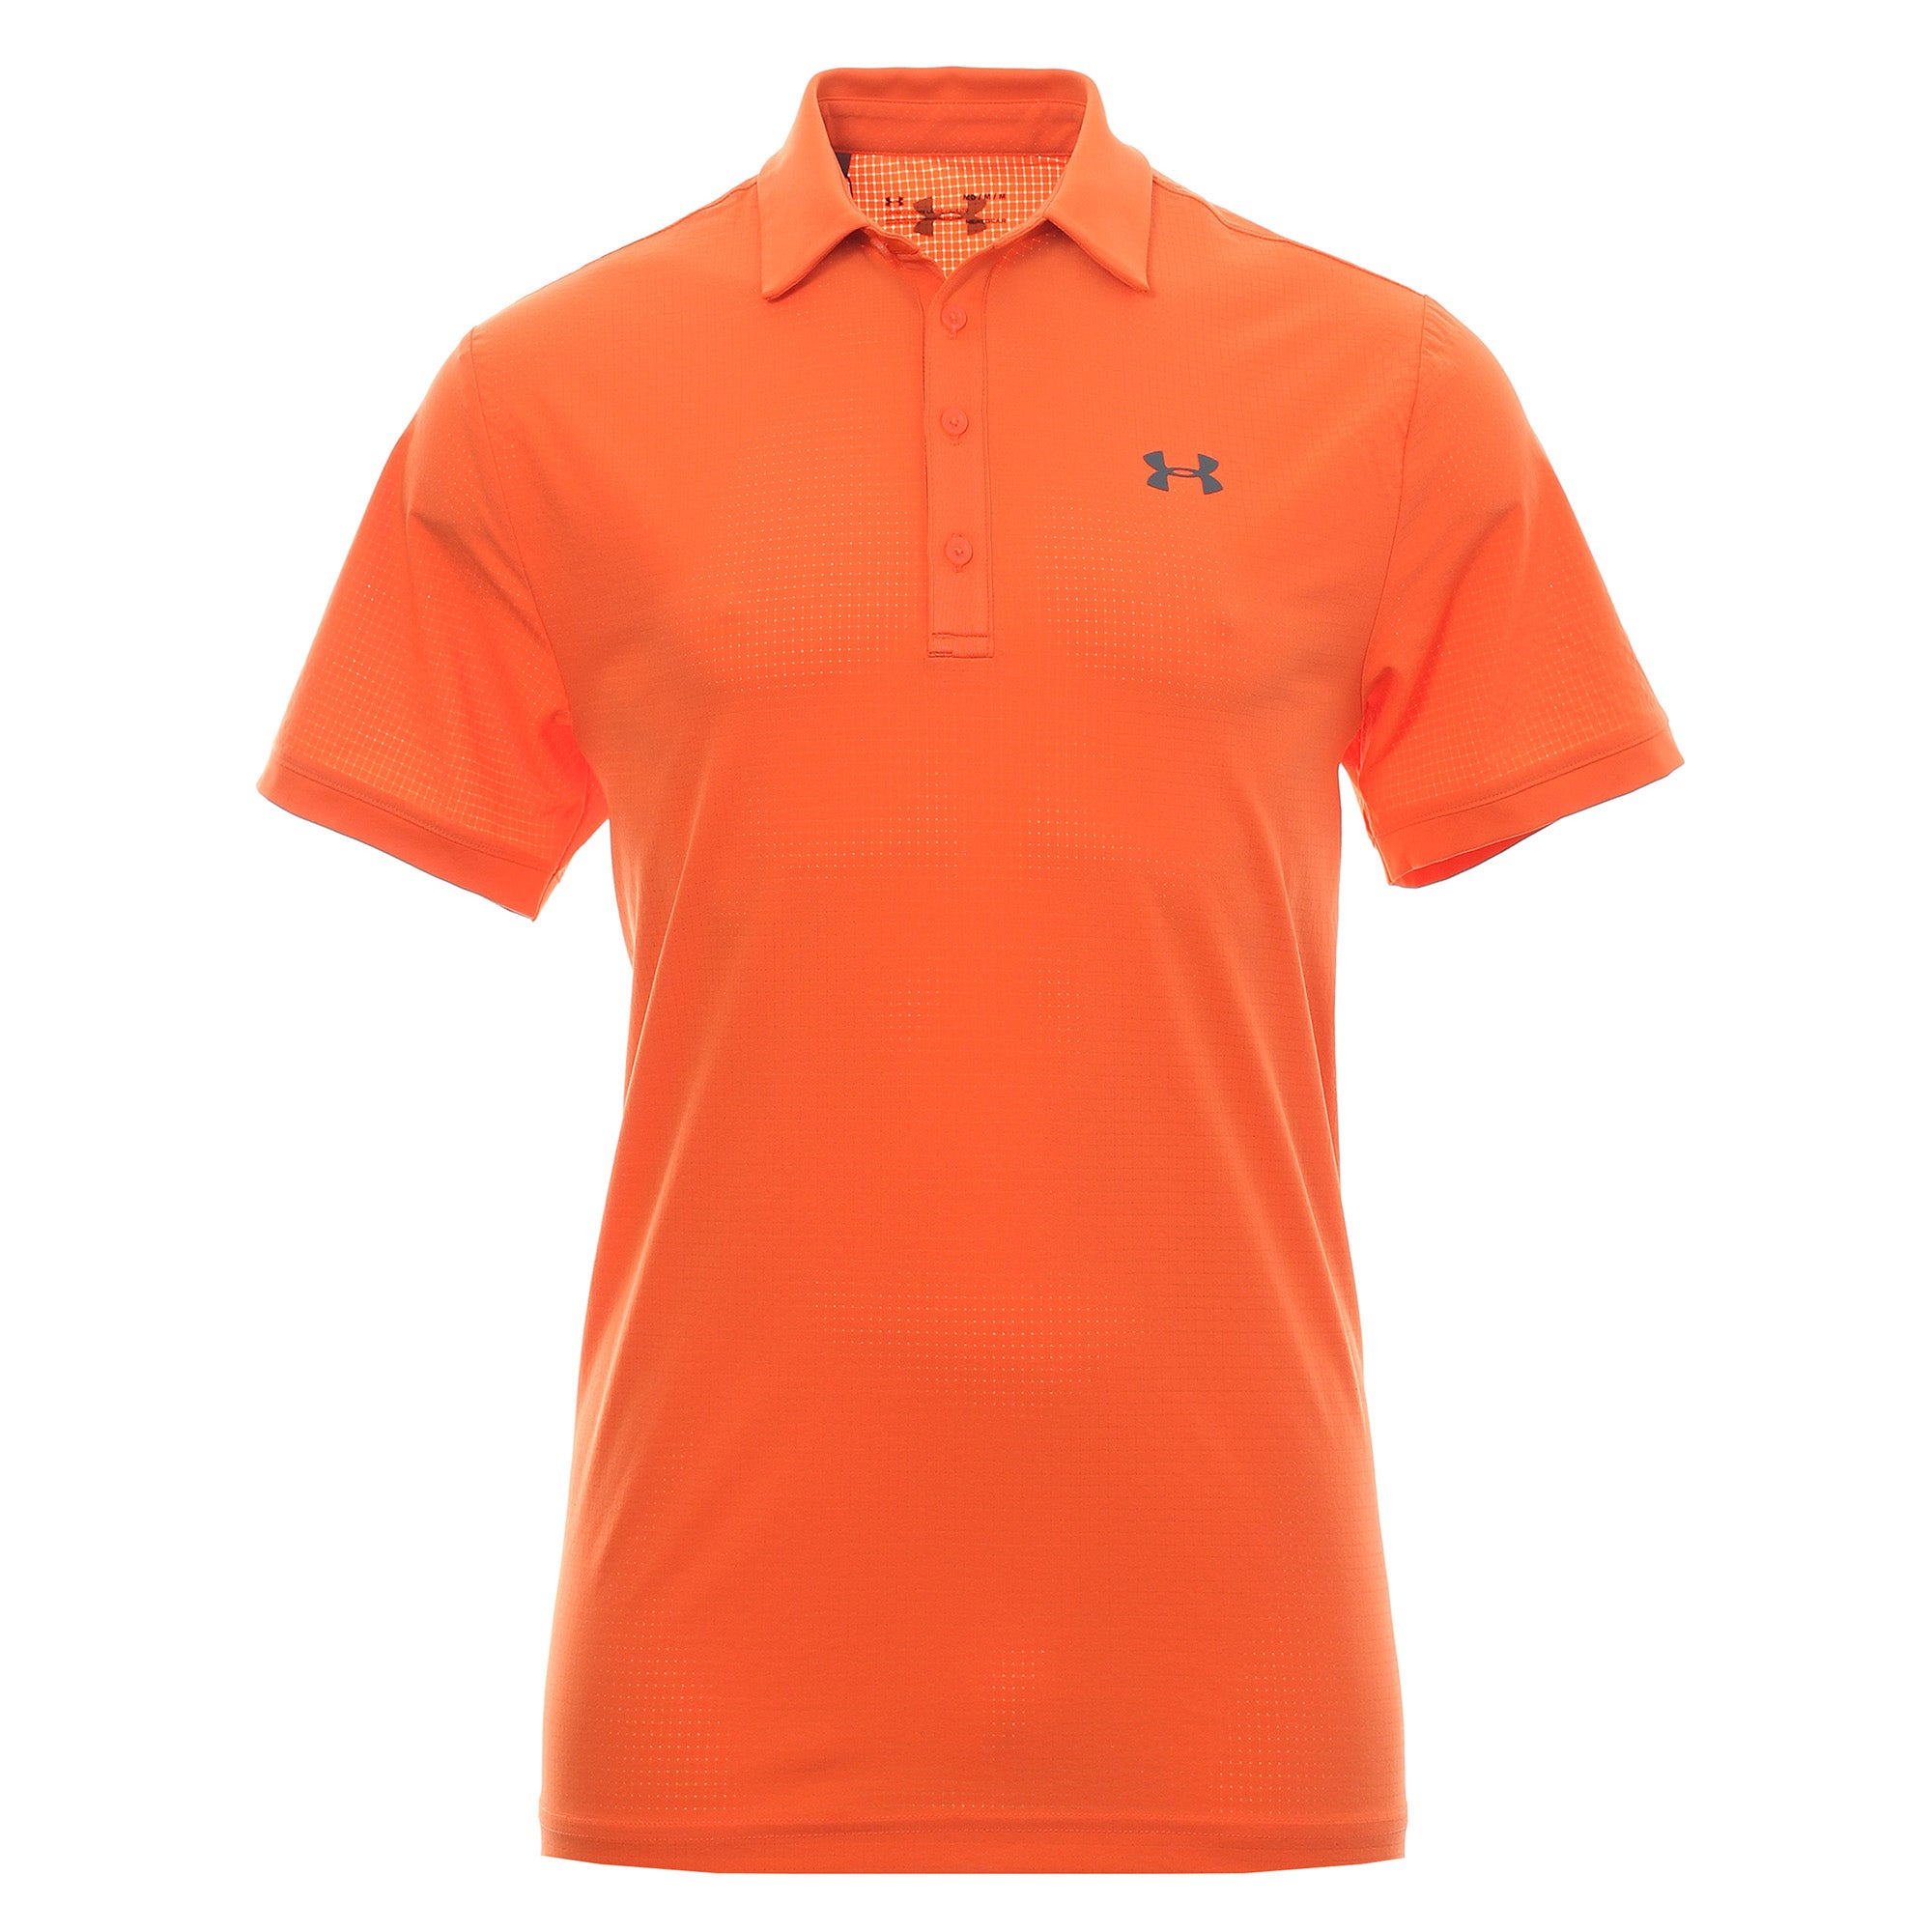 Under Armour Golf UA Playoff Vented Shirt 1327038